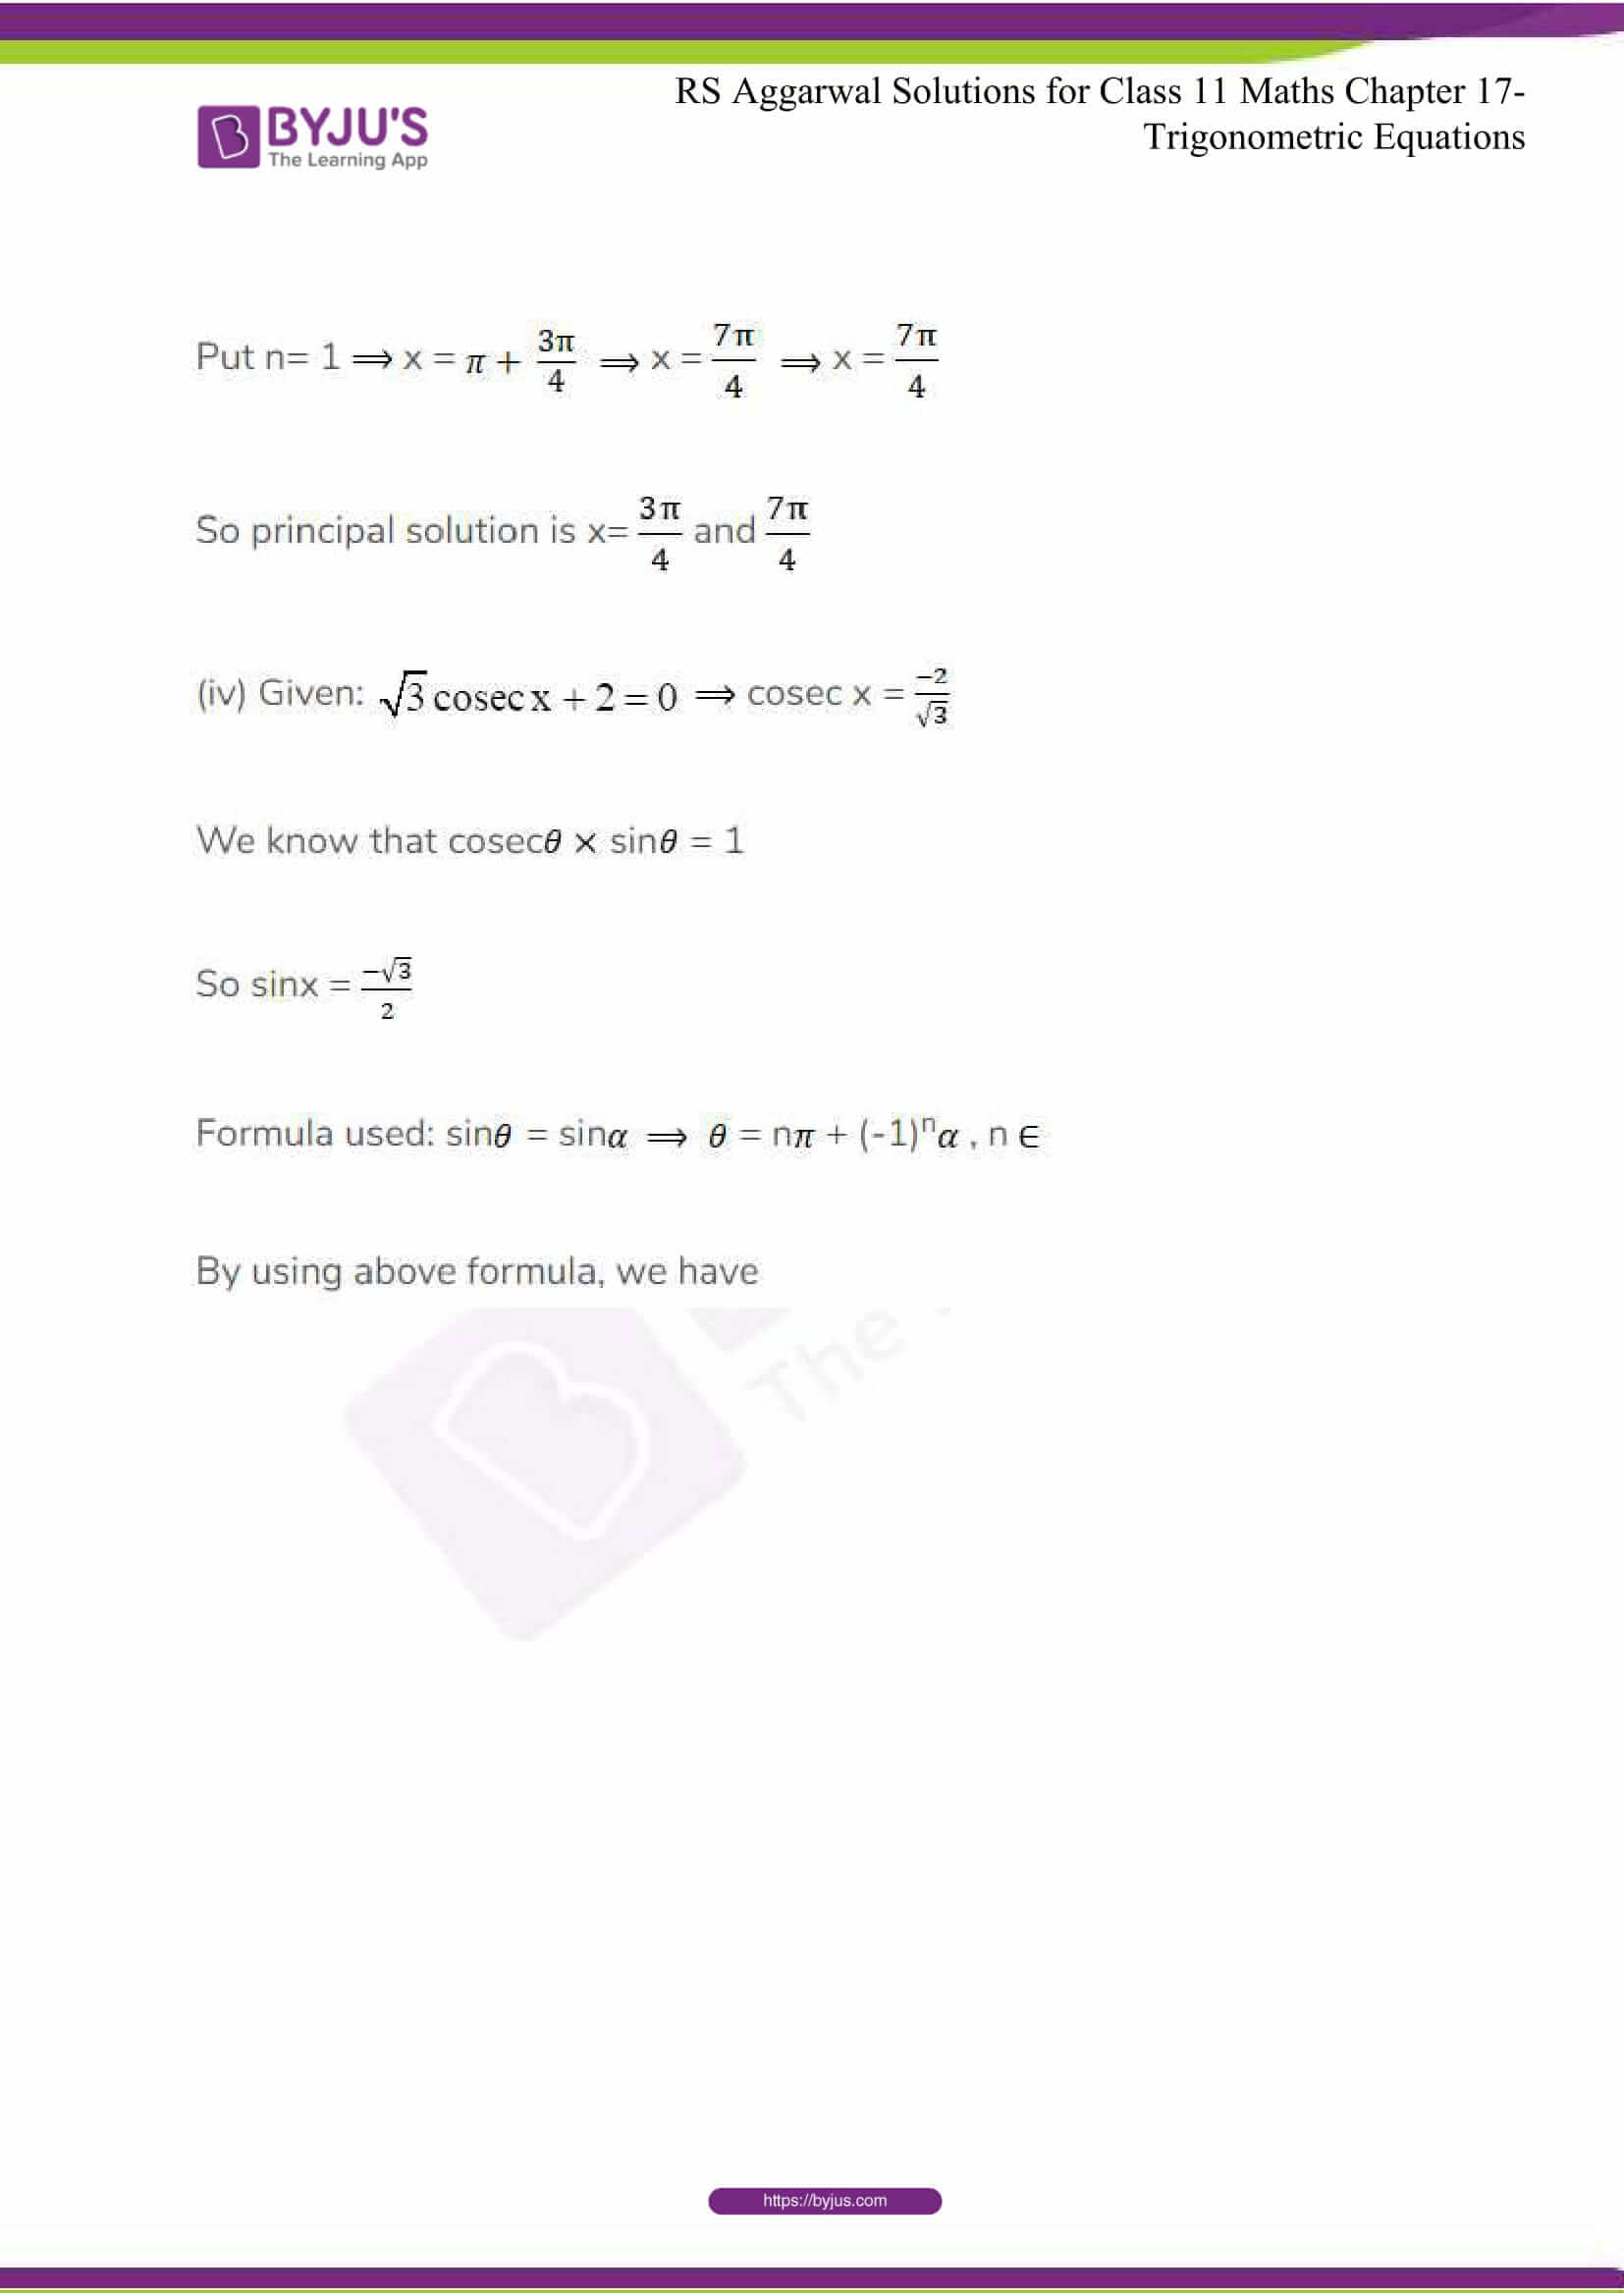 rsaggarwal solutions class 11 maths chapter 17 11